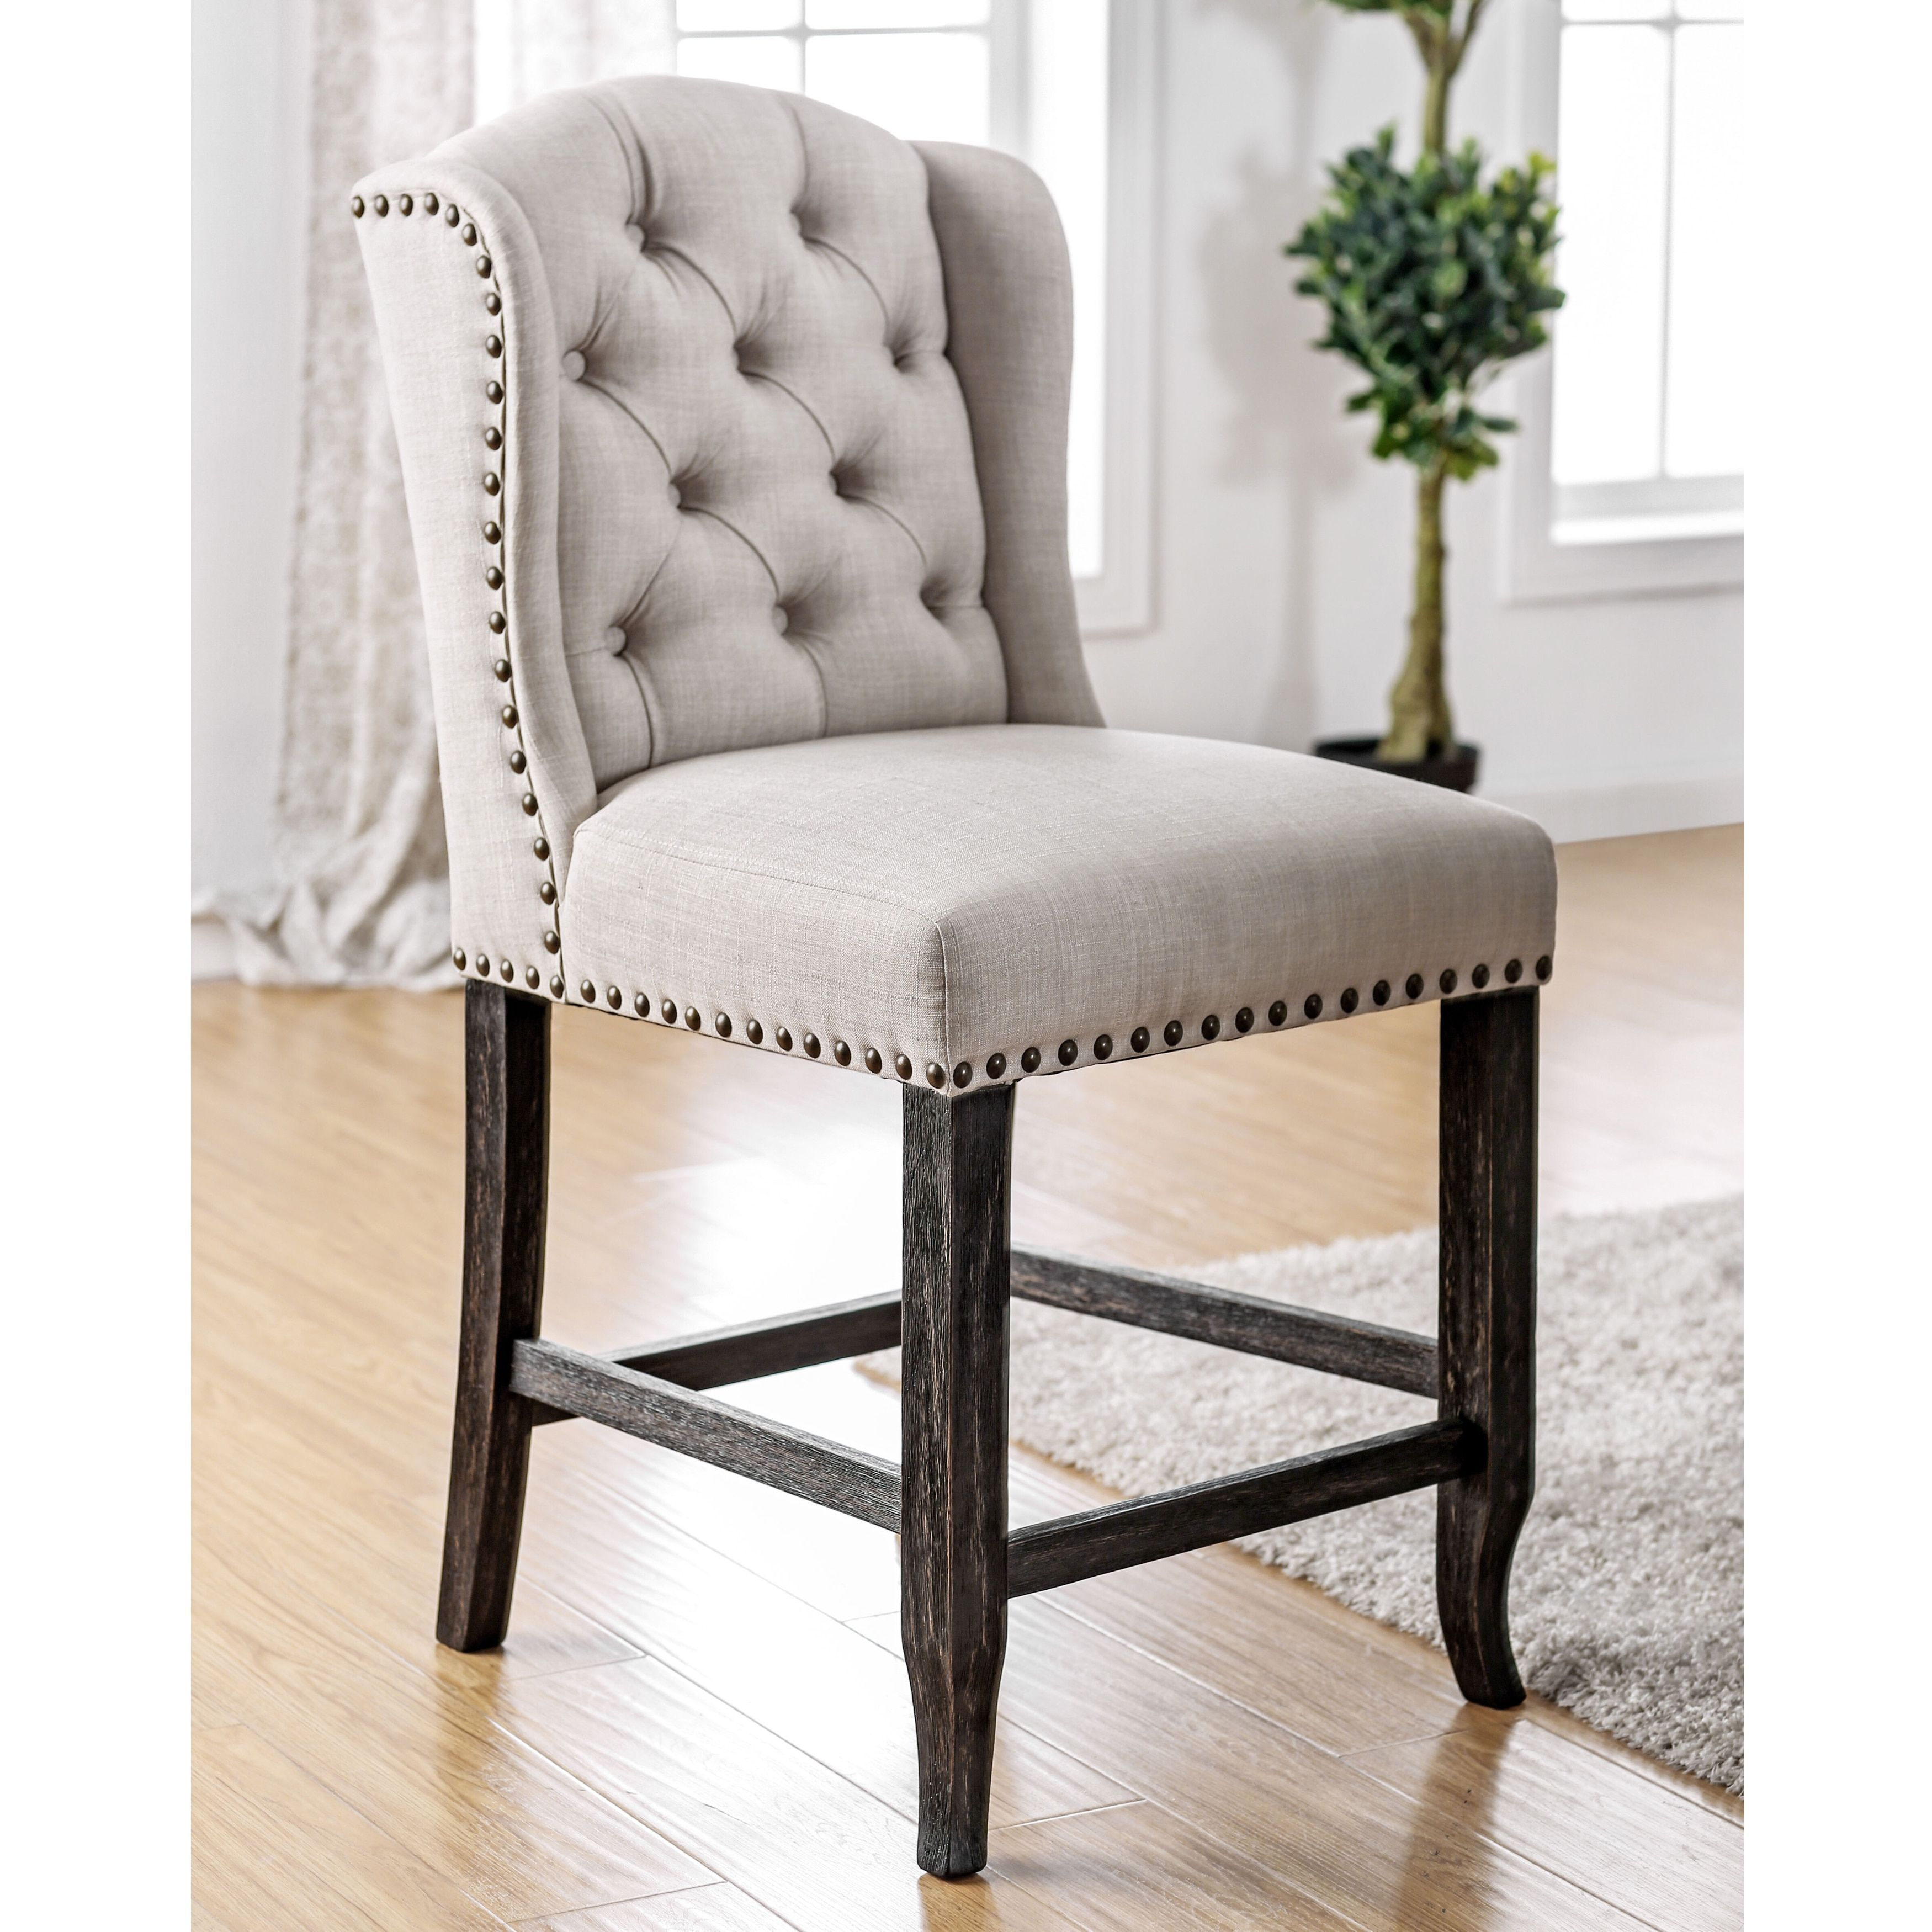 24 inch counter chairs desk chair leans back too far furniture of america telara contemporary tufted wingback height set 2 gray black fabric